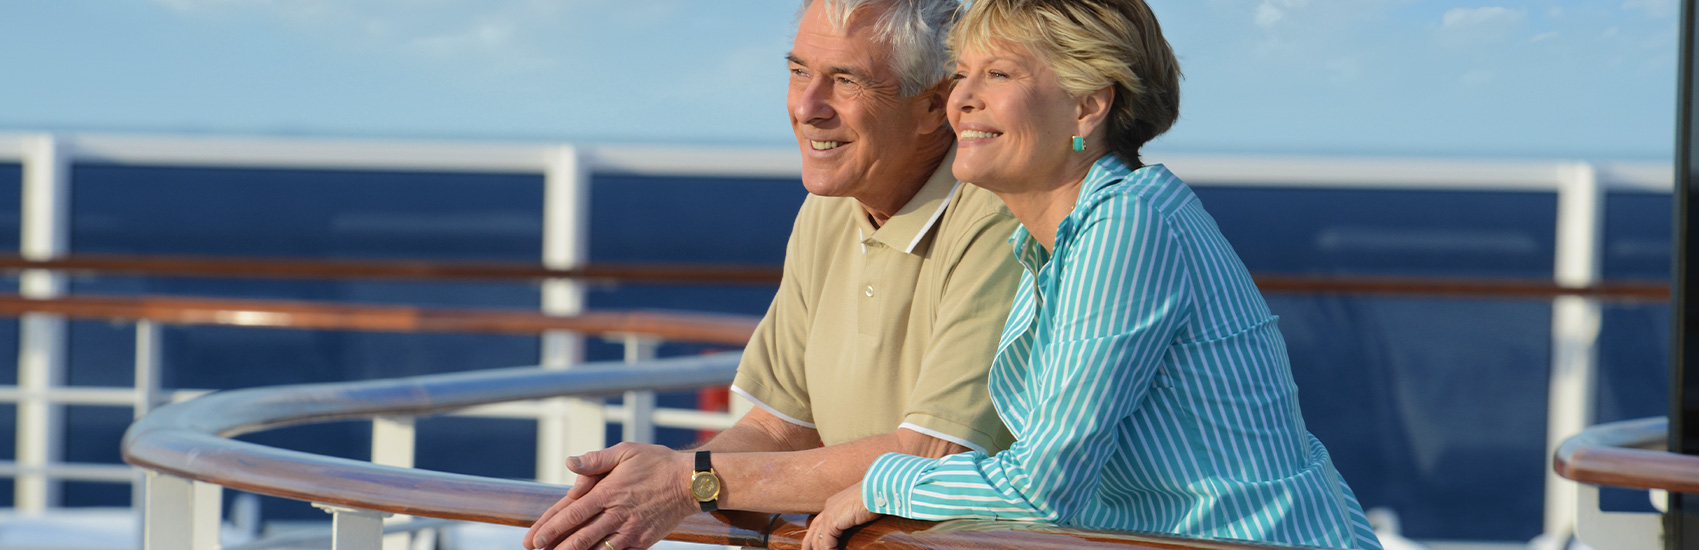 Embrace Your Passion With Oceania Cruises